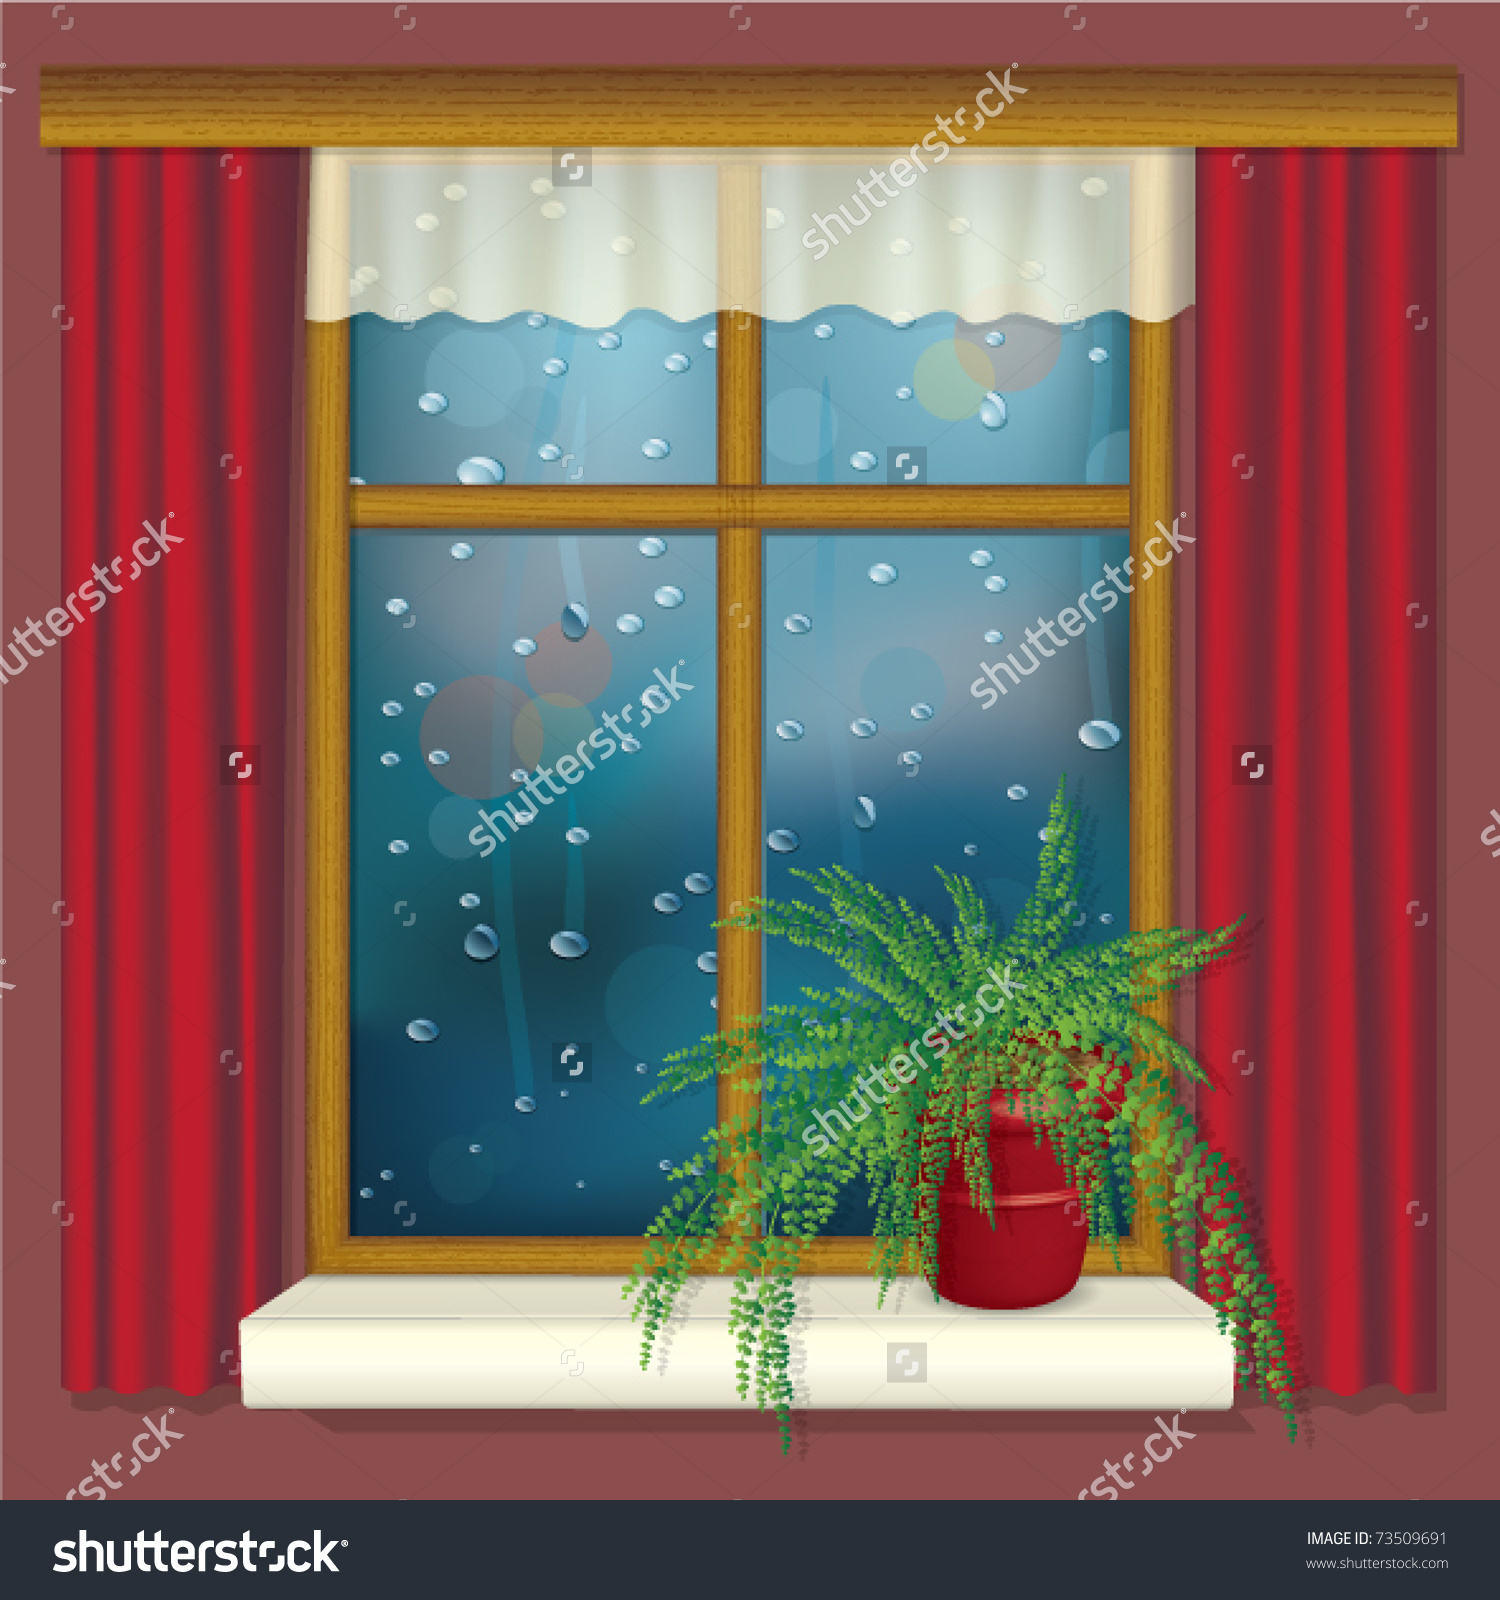 Rainy Window Curtains Flower On Window Stock Vector 73509691.